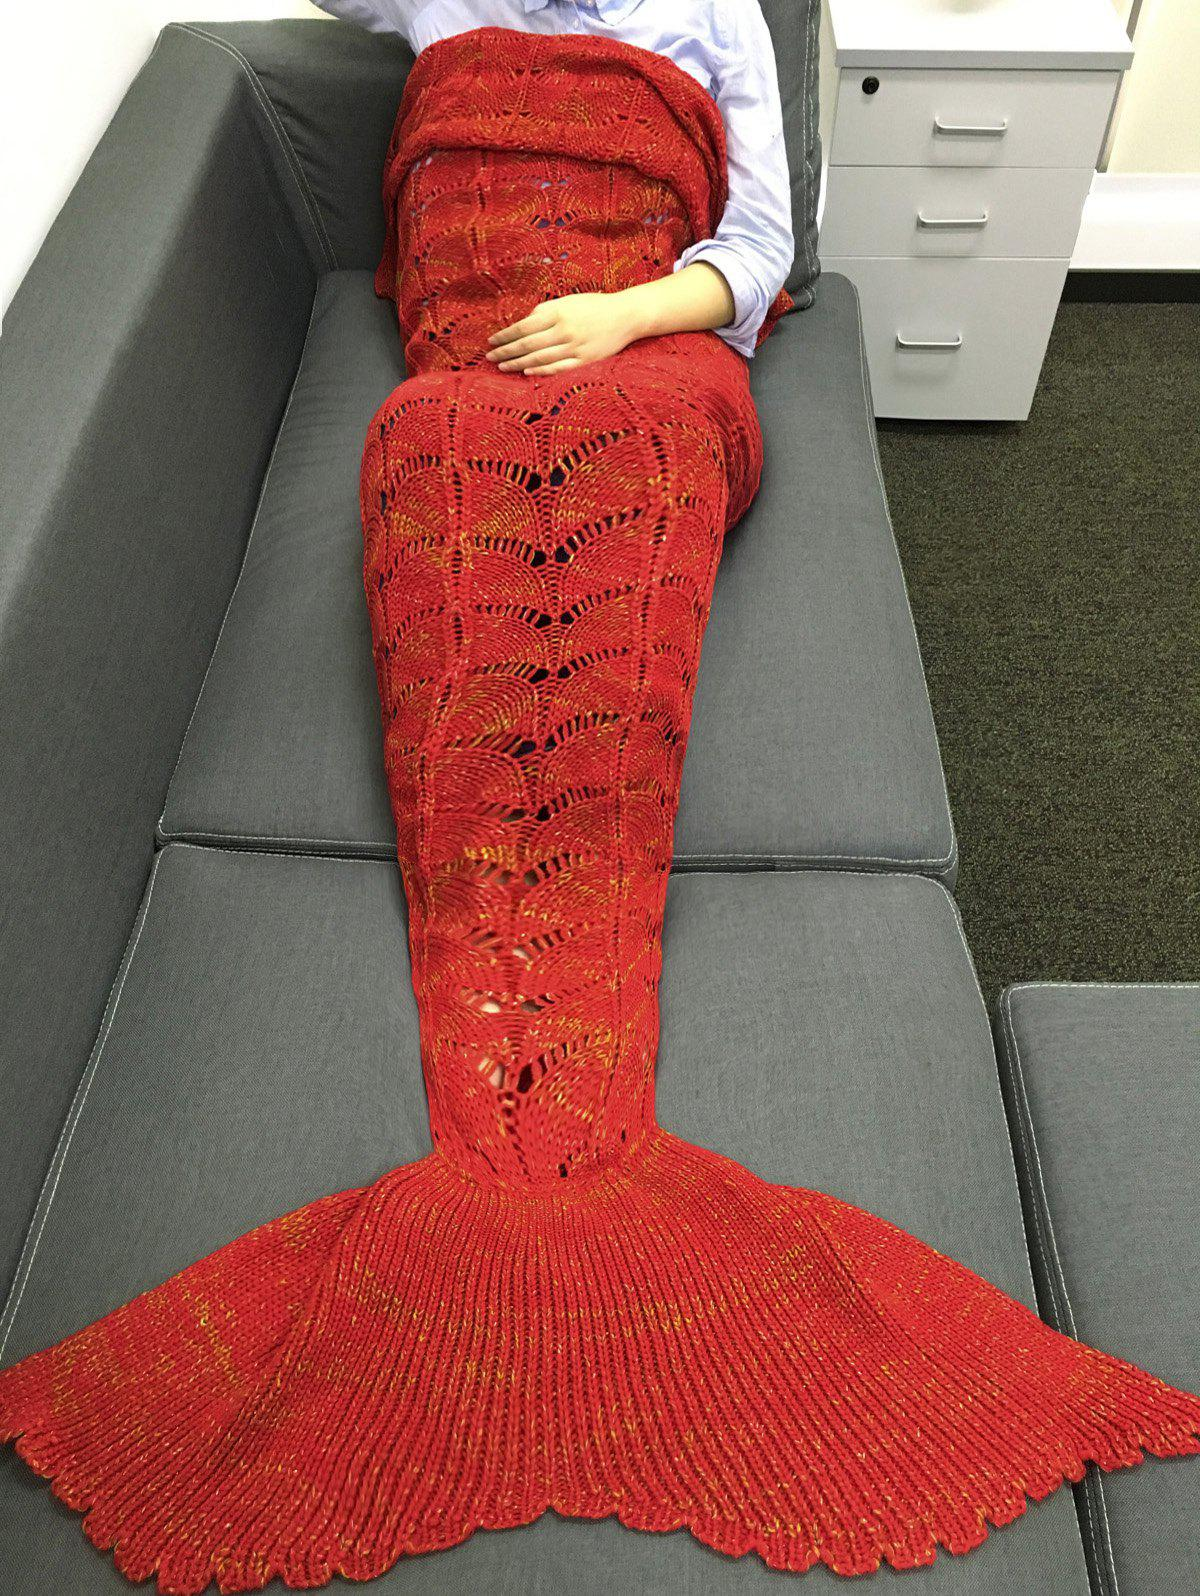 Fashionable Knitting Hollow Out Design Mermaid Shape Blanket -  RED